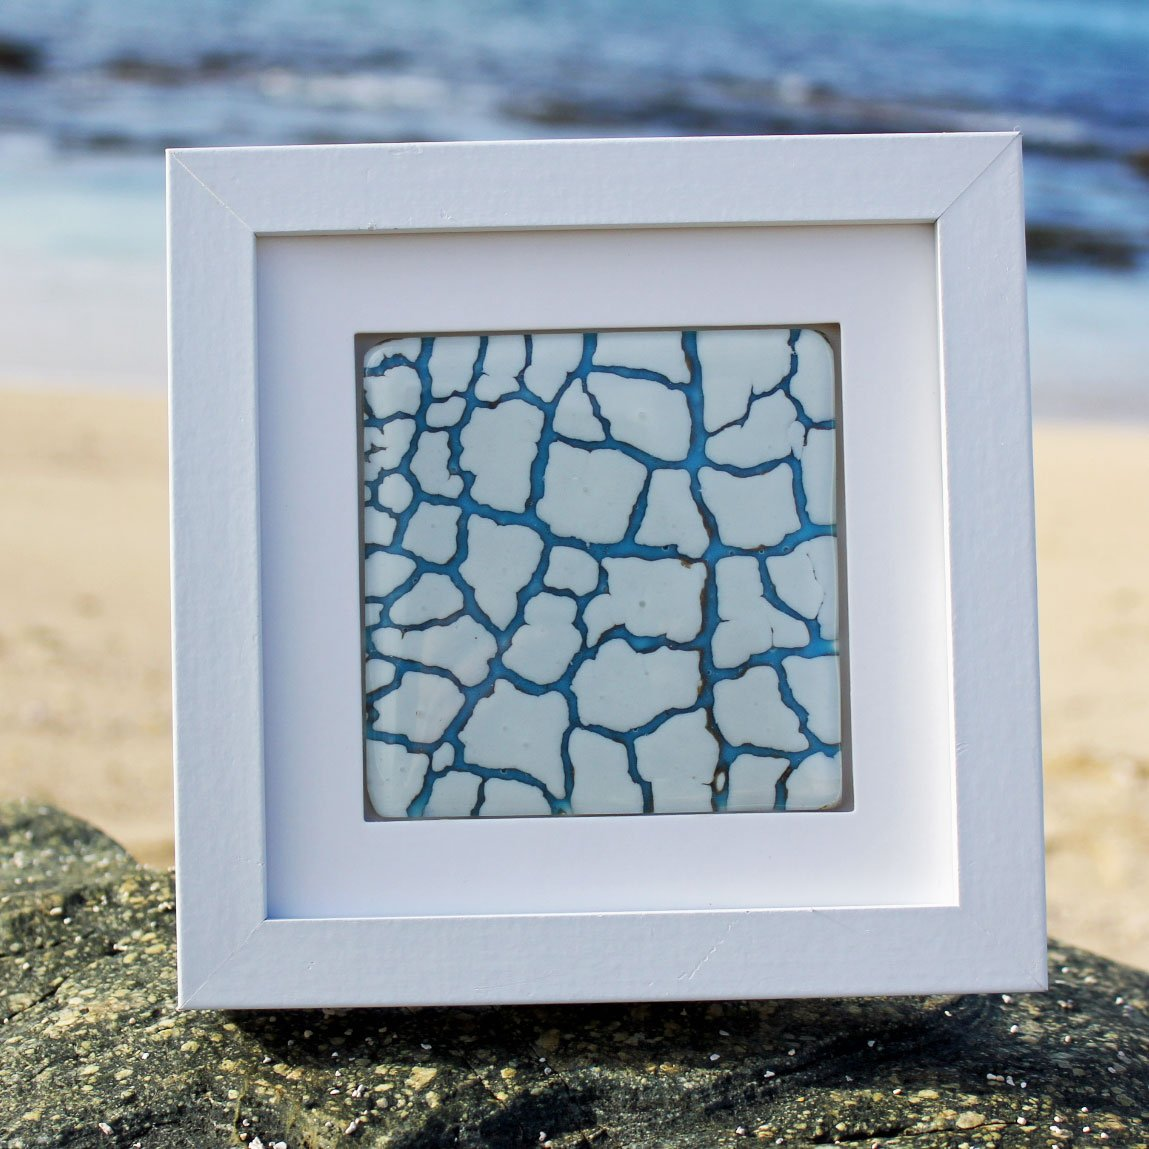 A framed crackle technique piece in glass made by Connemara Blue